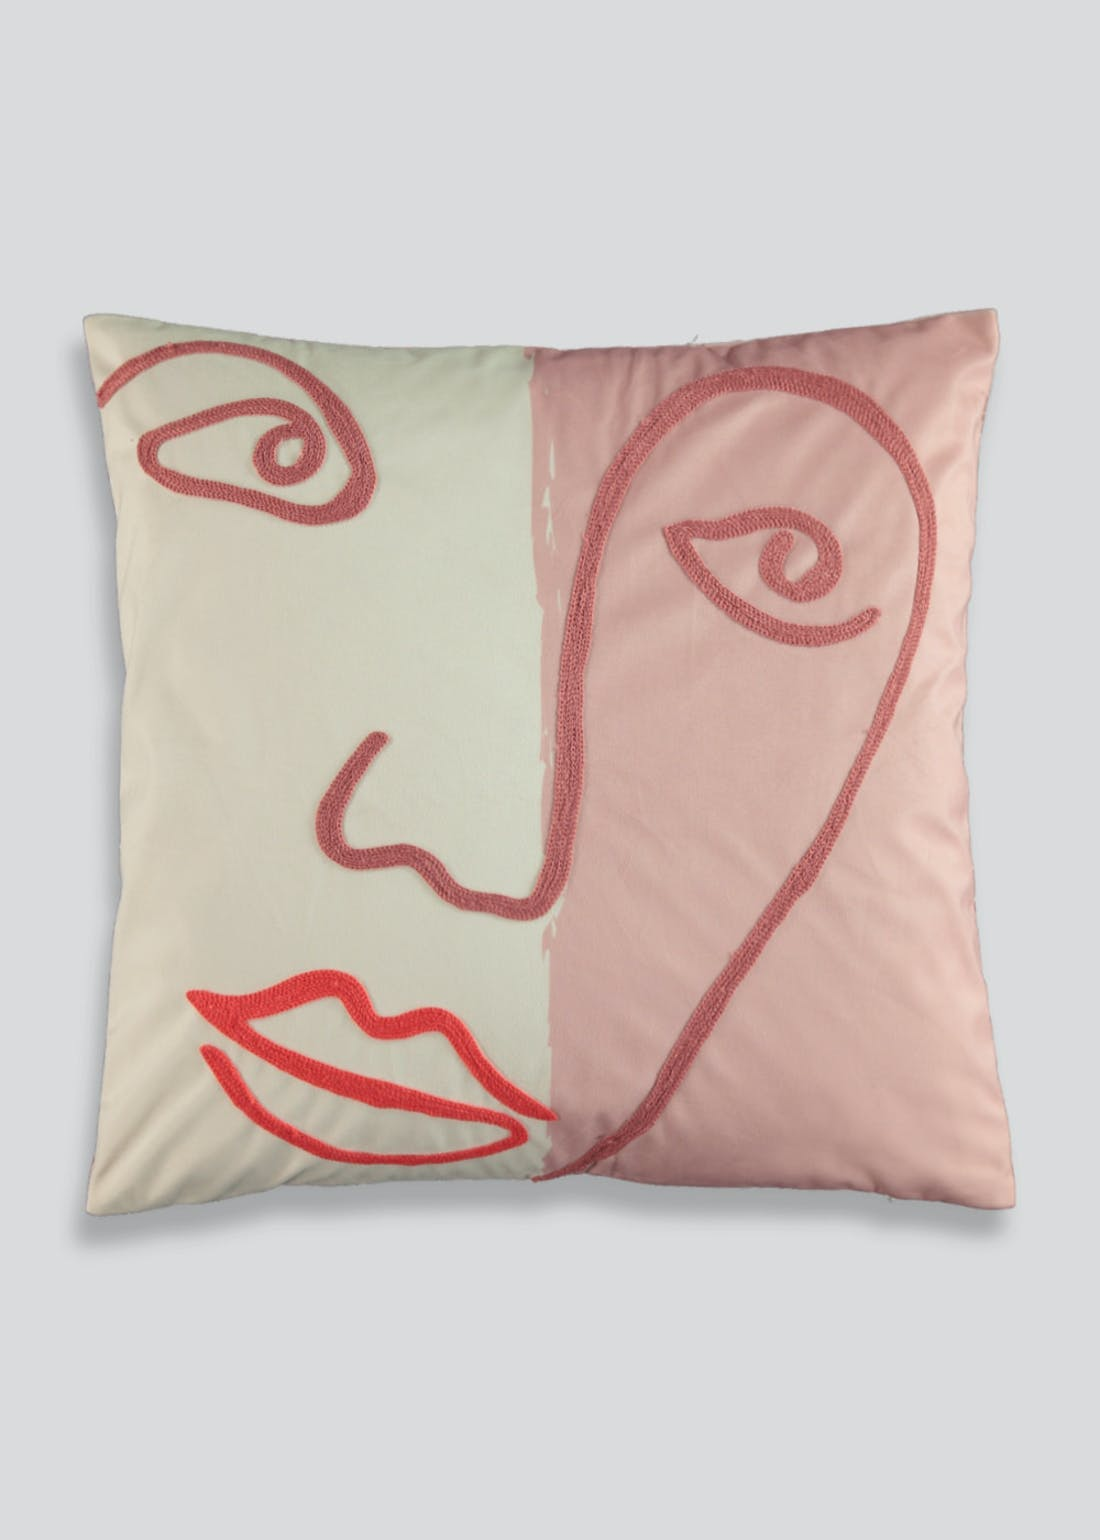 Embroidered Face Cushion (46cm x 46cm)